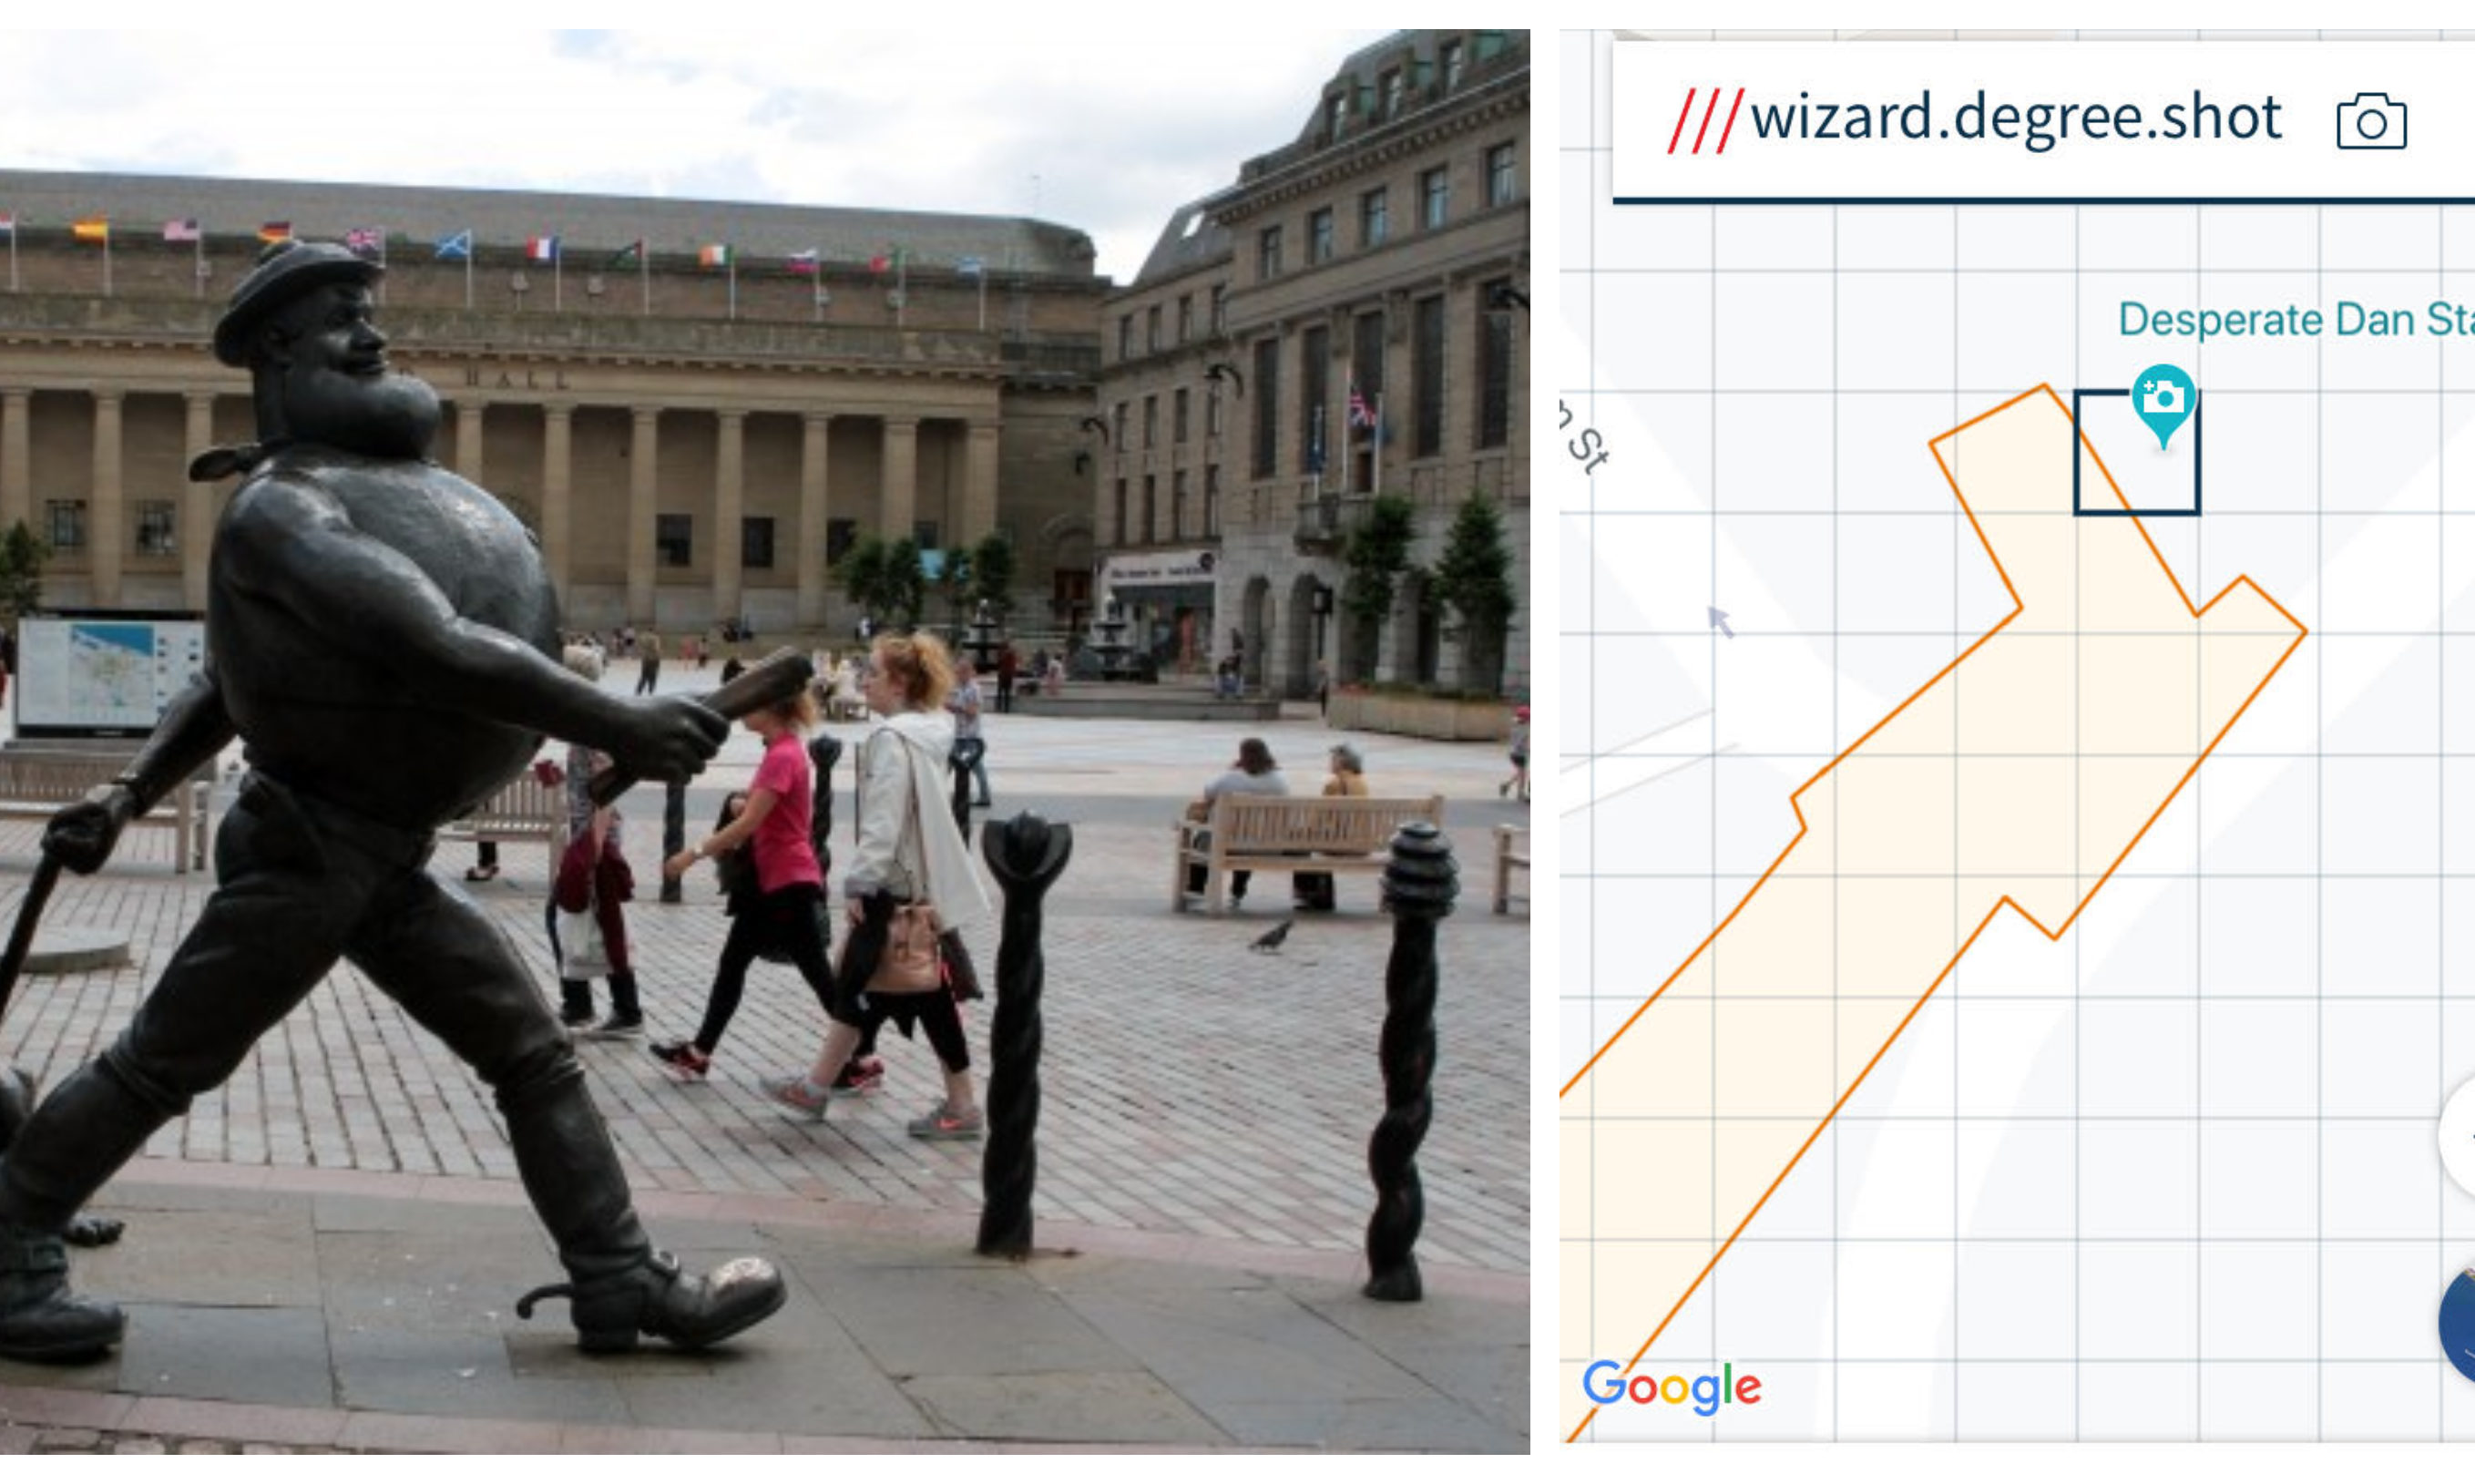 'wizard.degree.shot' - the what3words code for the Desperate Dan Statue in Dundee's High Street.